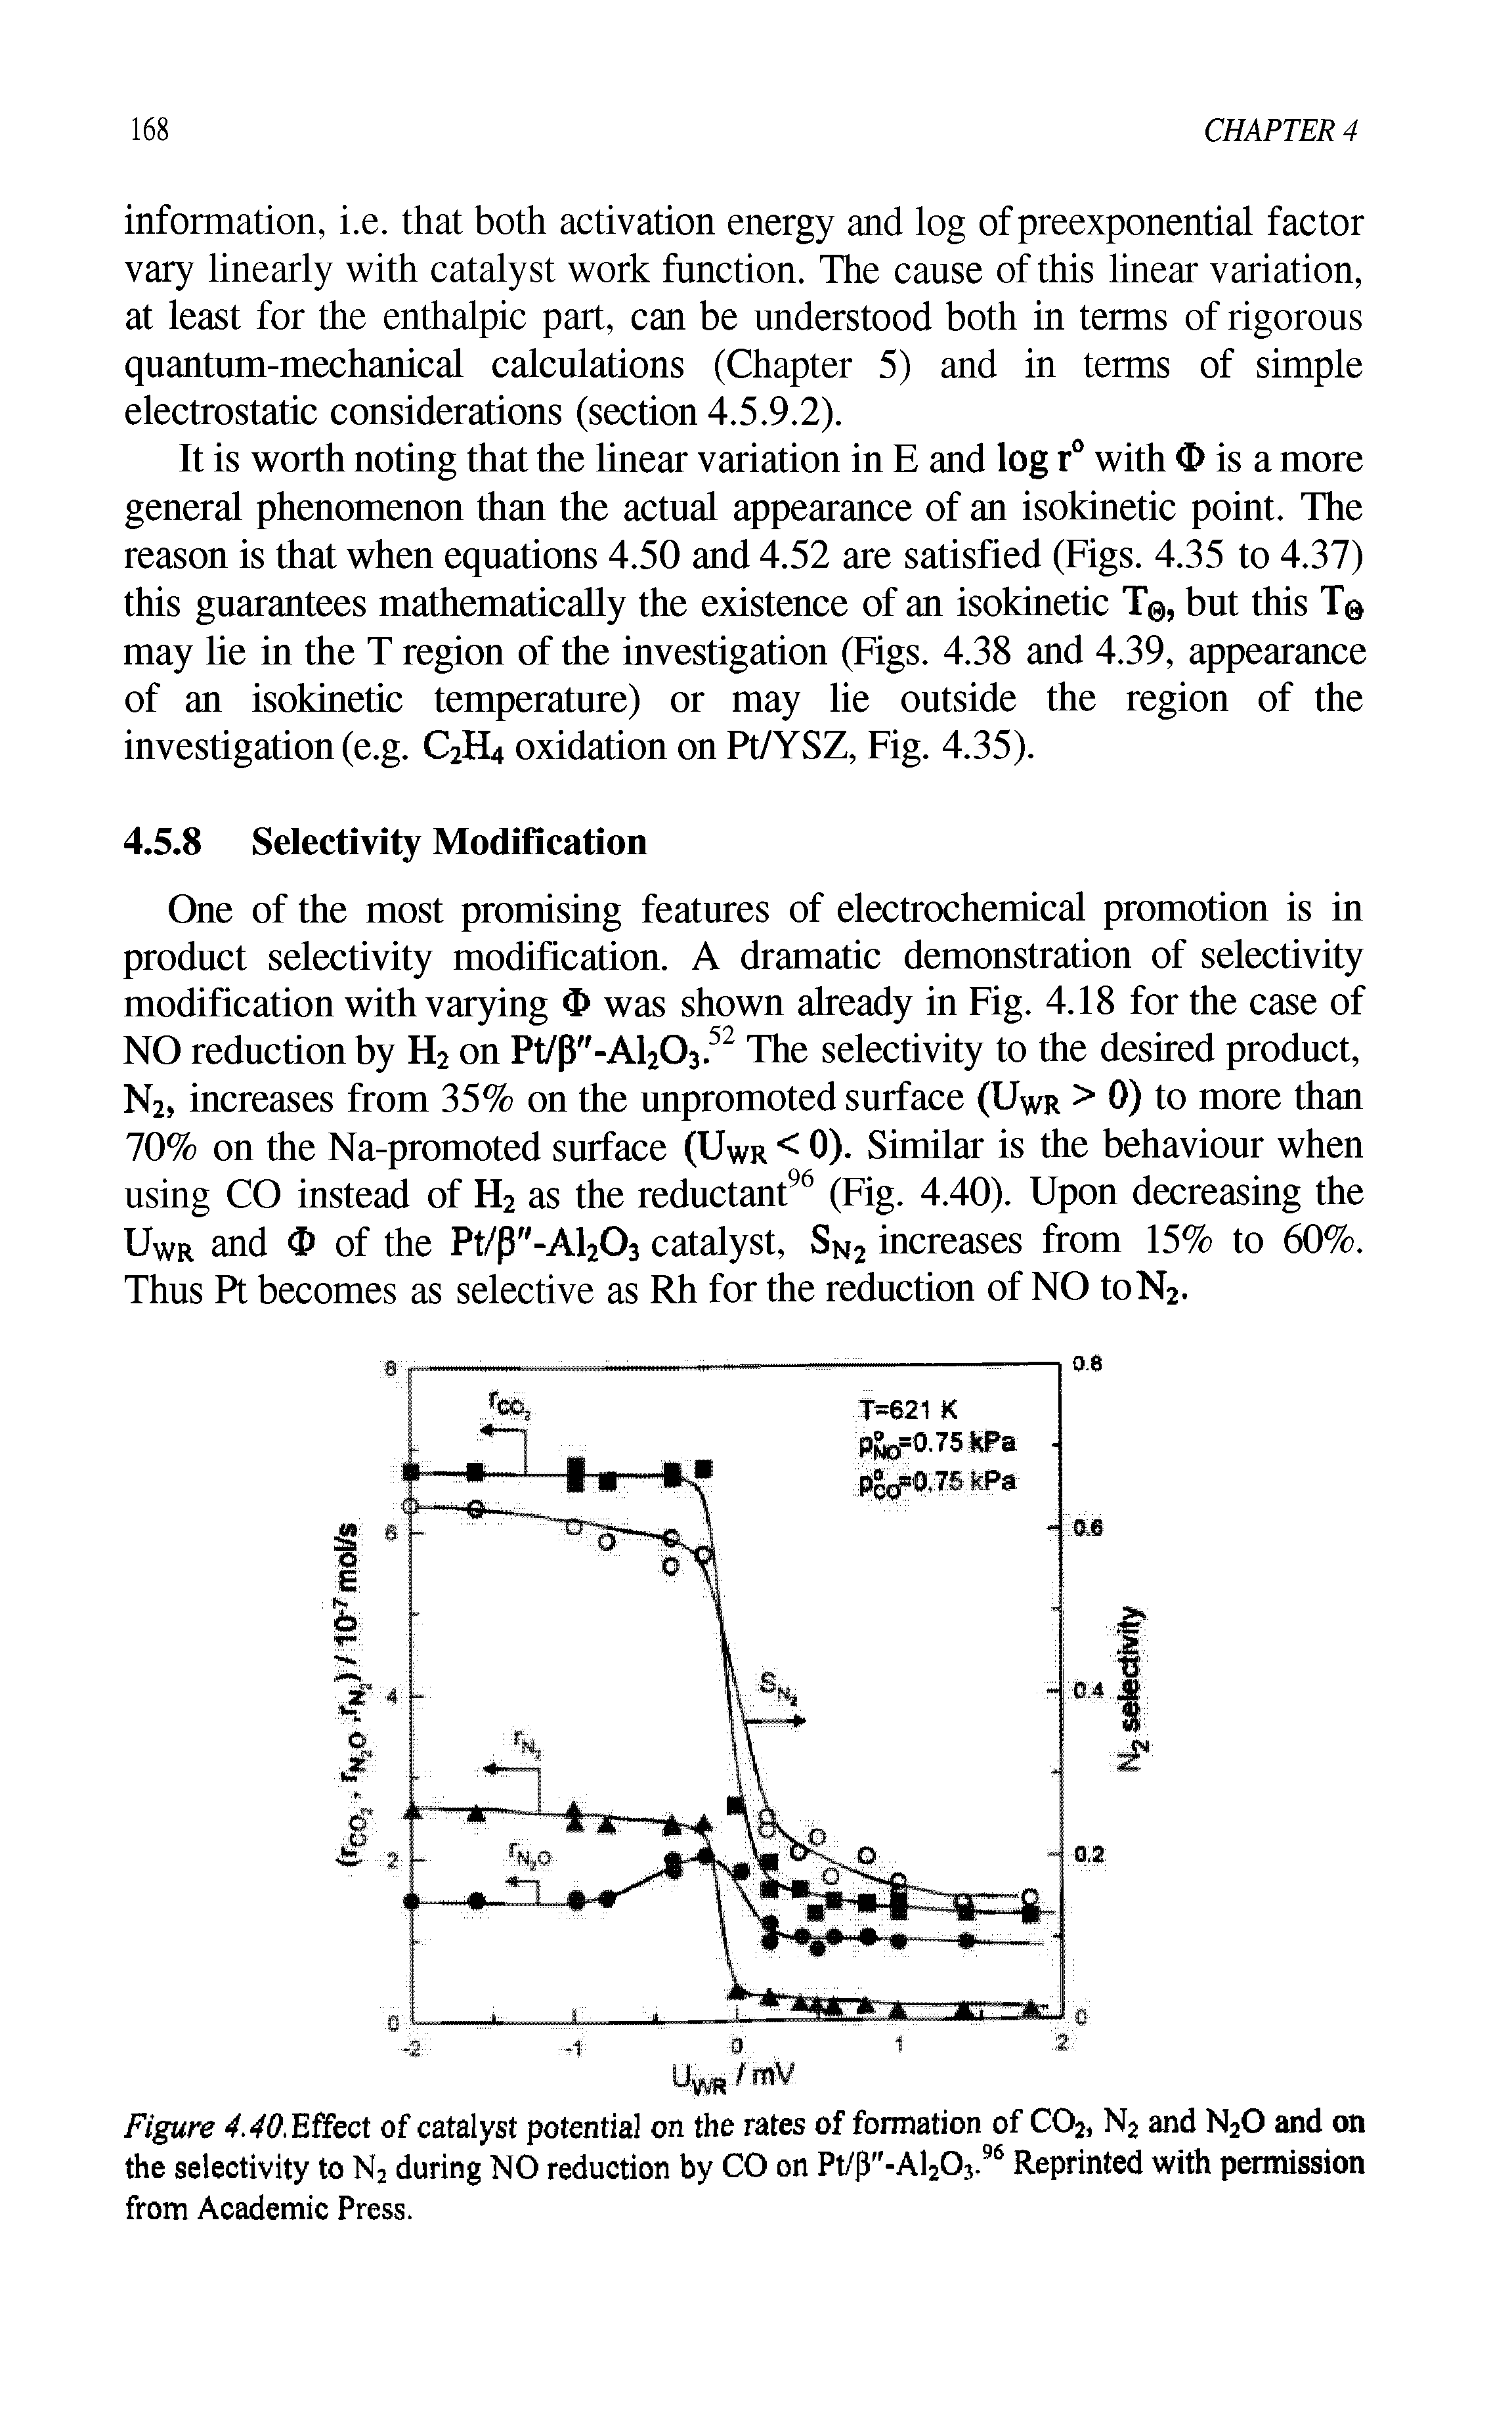 Figure 4.40. Effect of catalyst potential on the rates of formation of C02) N2 and N20 and on the selectivity to N2 during NO reduction by CO on Pt/(3 -Al20j.96 Reprinted with permission from Academic Press.